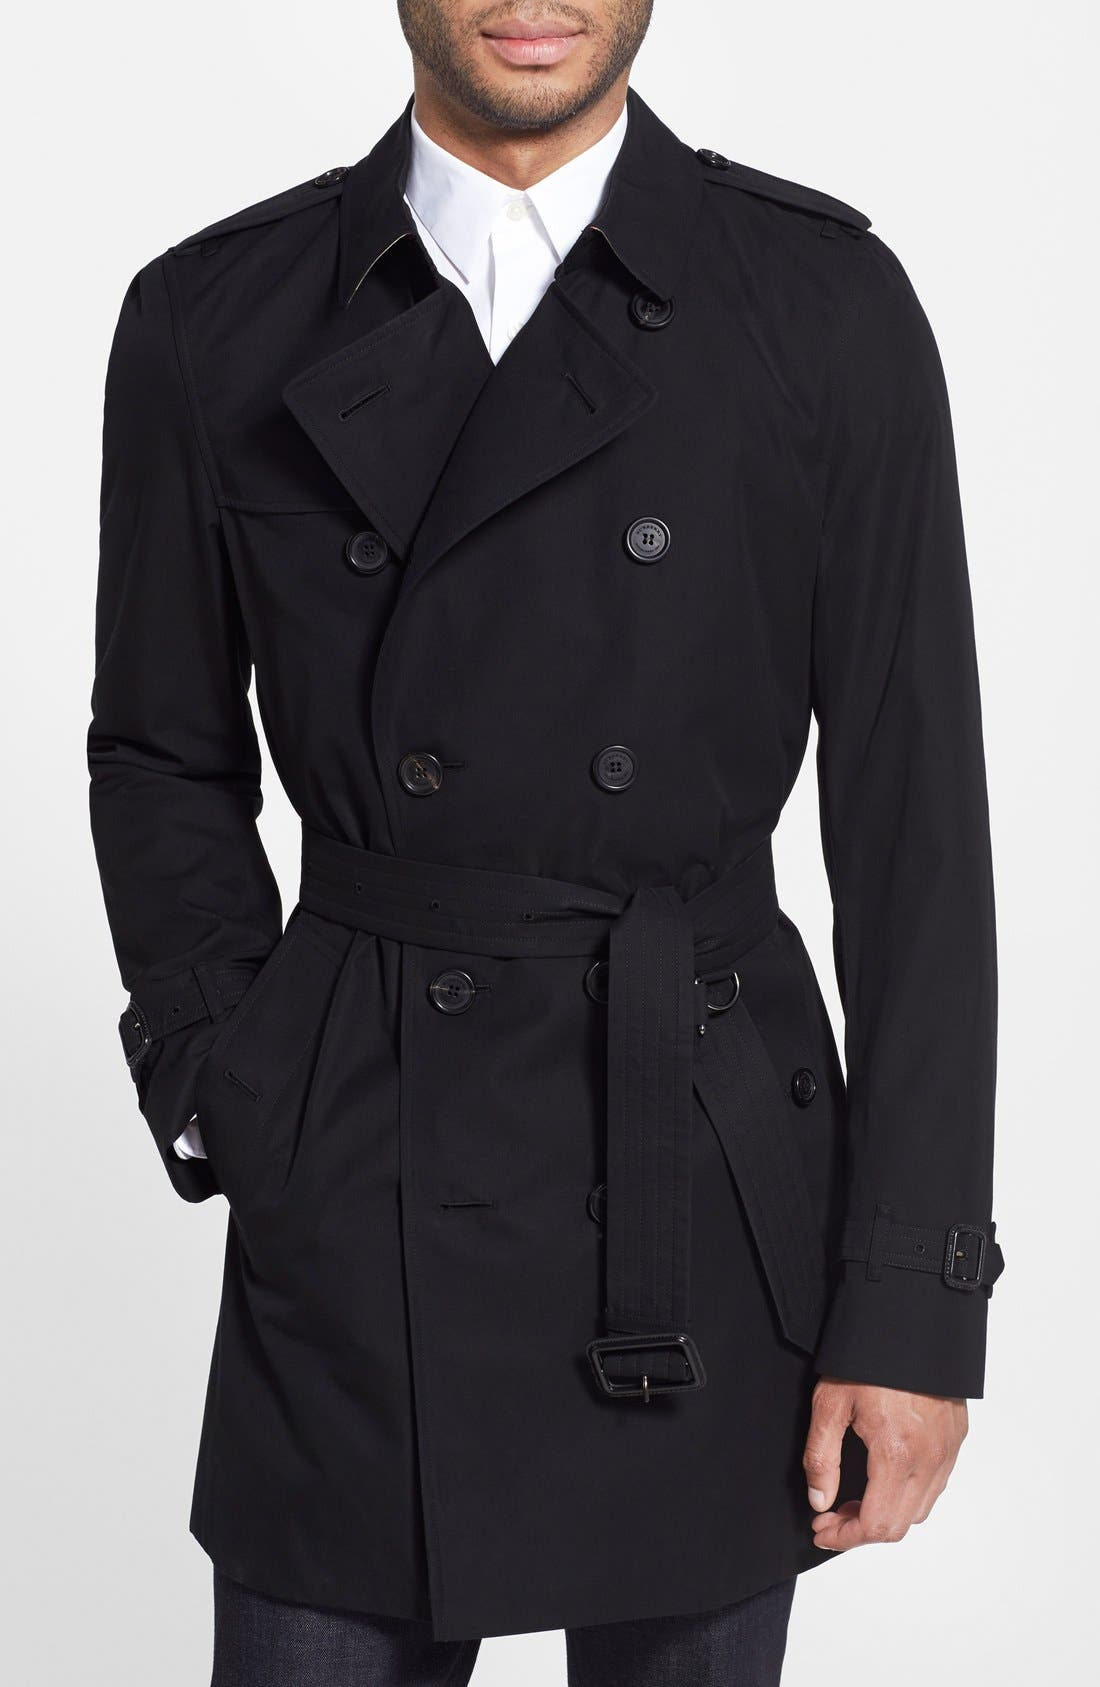 Main Image - Burberry Kensington Double Breasted Trench Coat